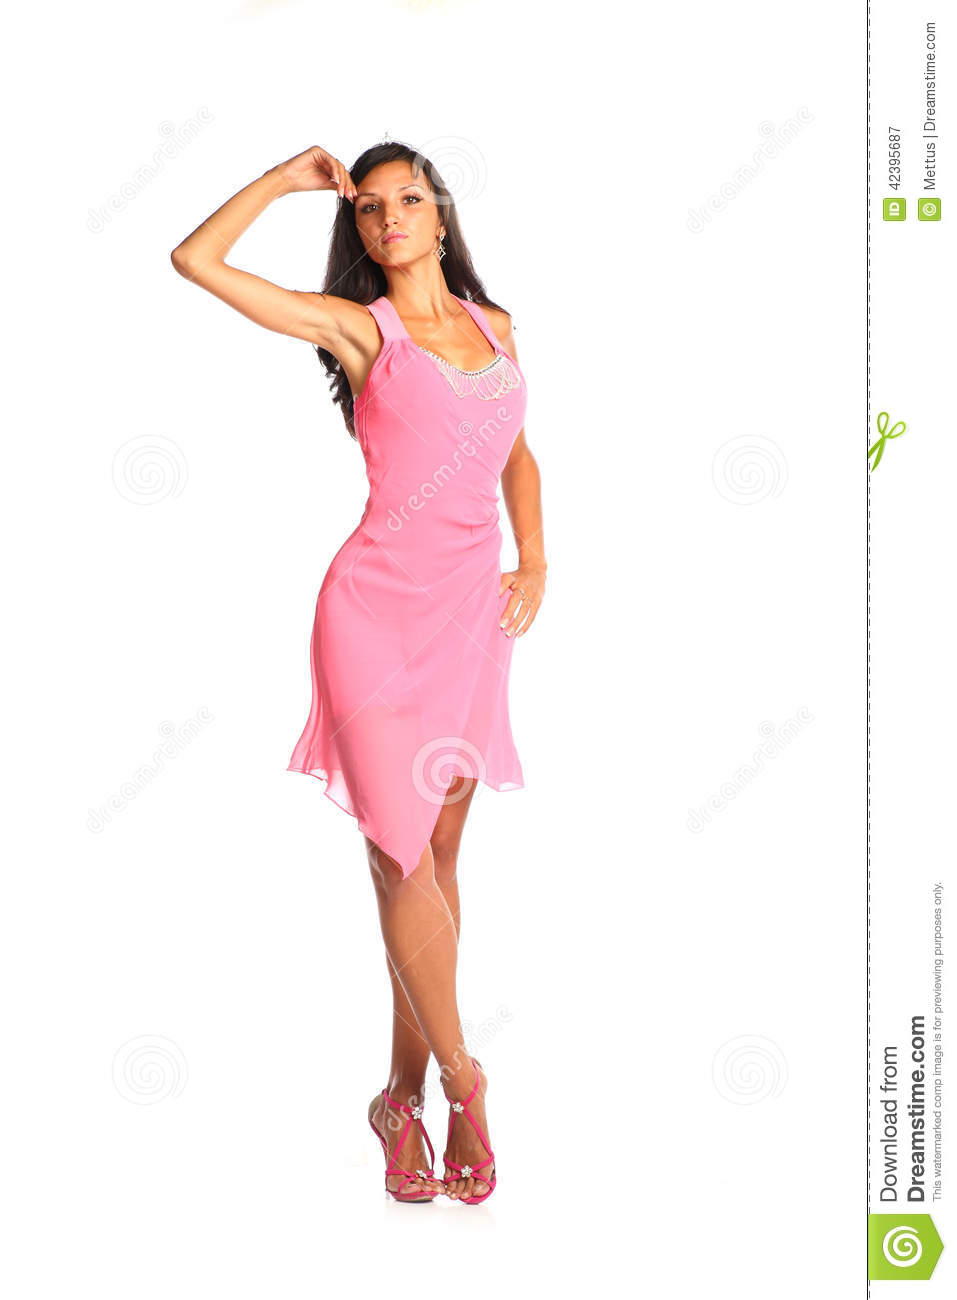 Excellent Brunette Woman In Dress Over White Background Stock Images  Image